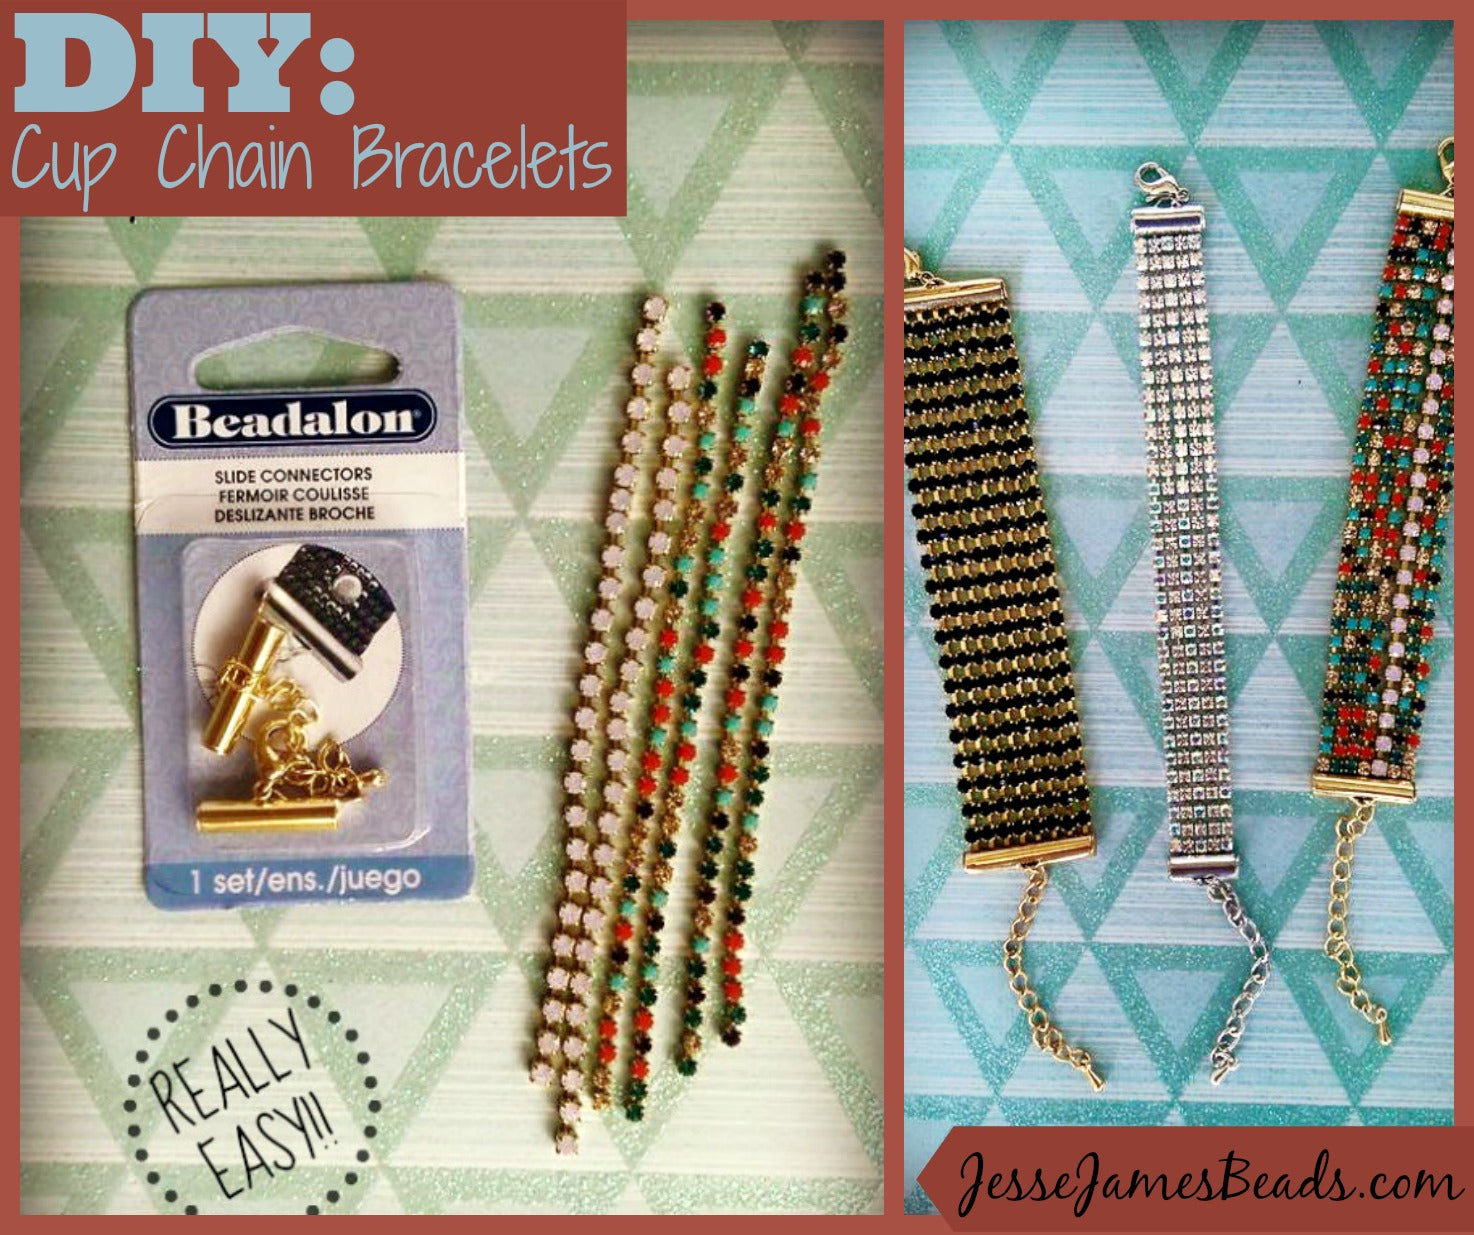 DIY Cup Chain Bracelet, quick and easy project from Jesse James